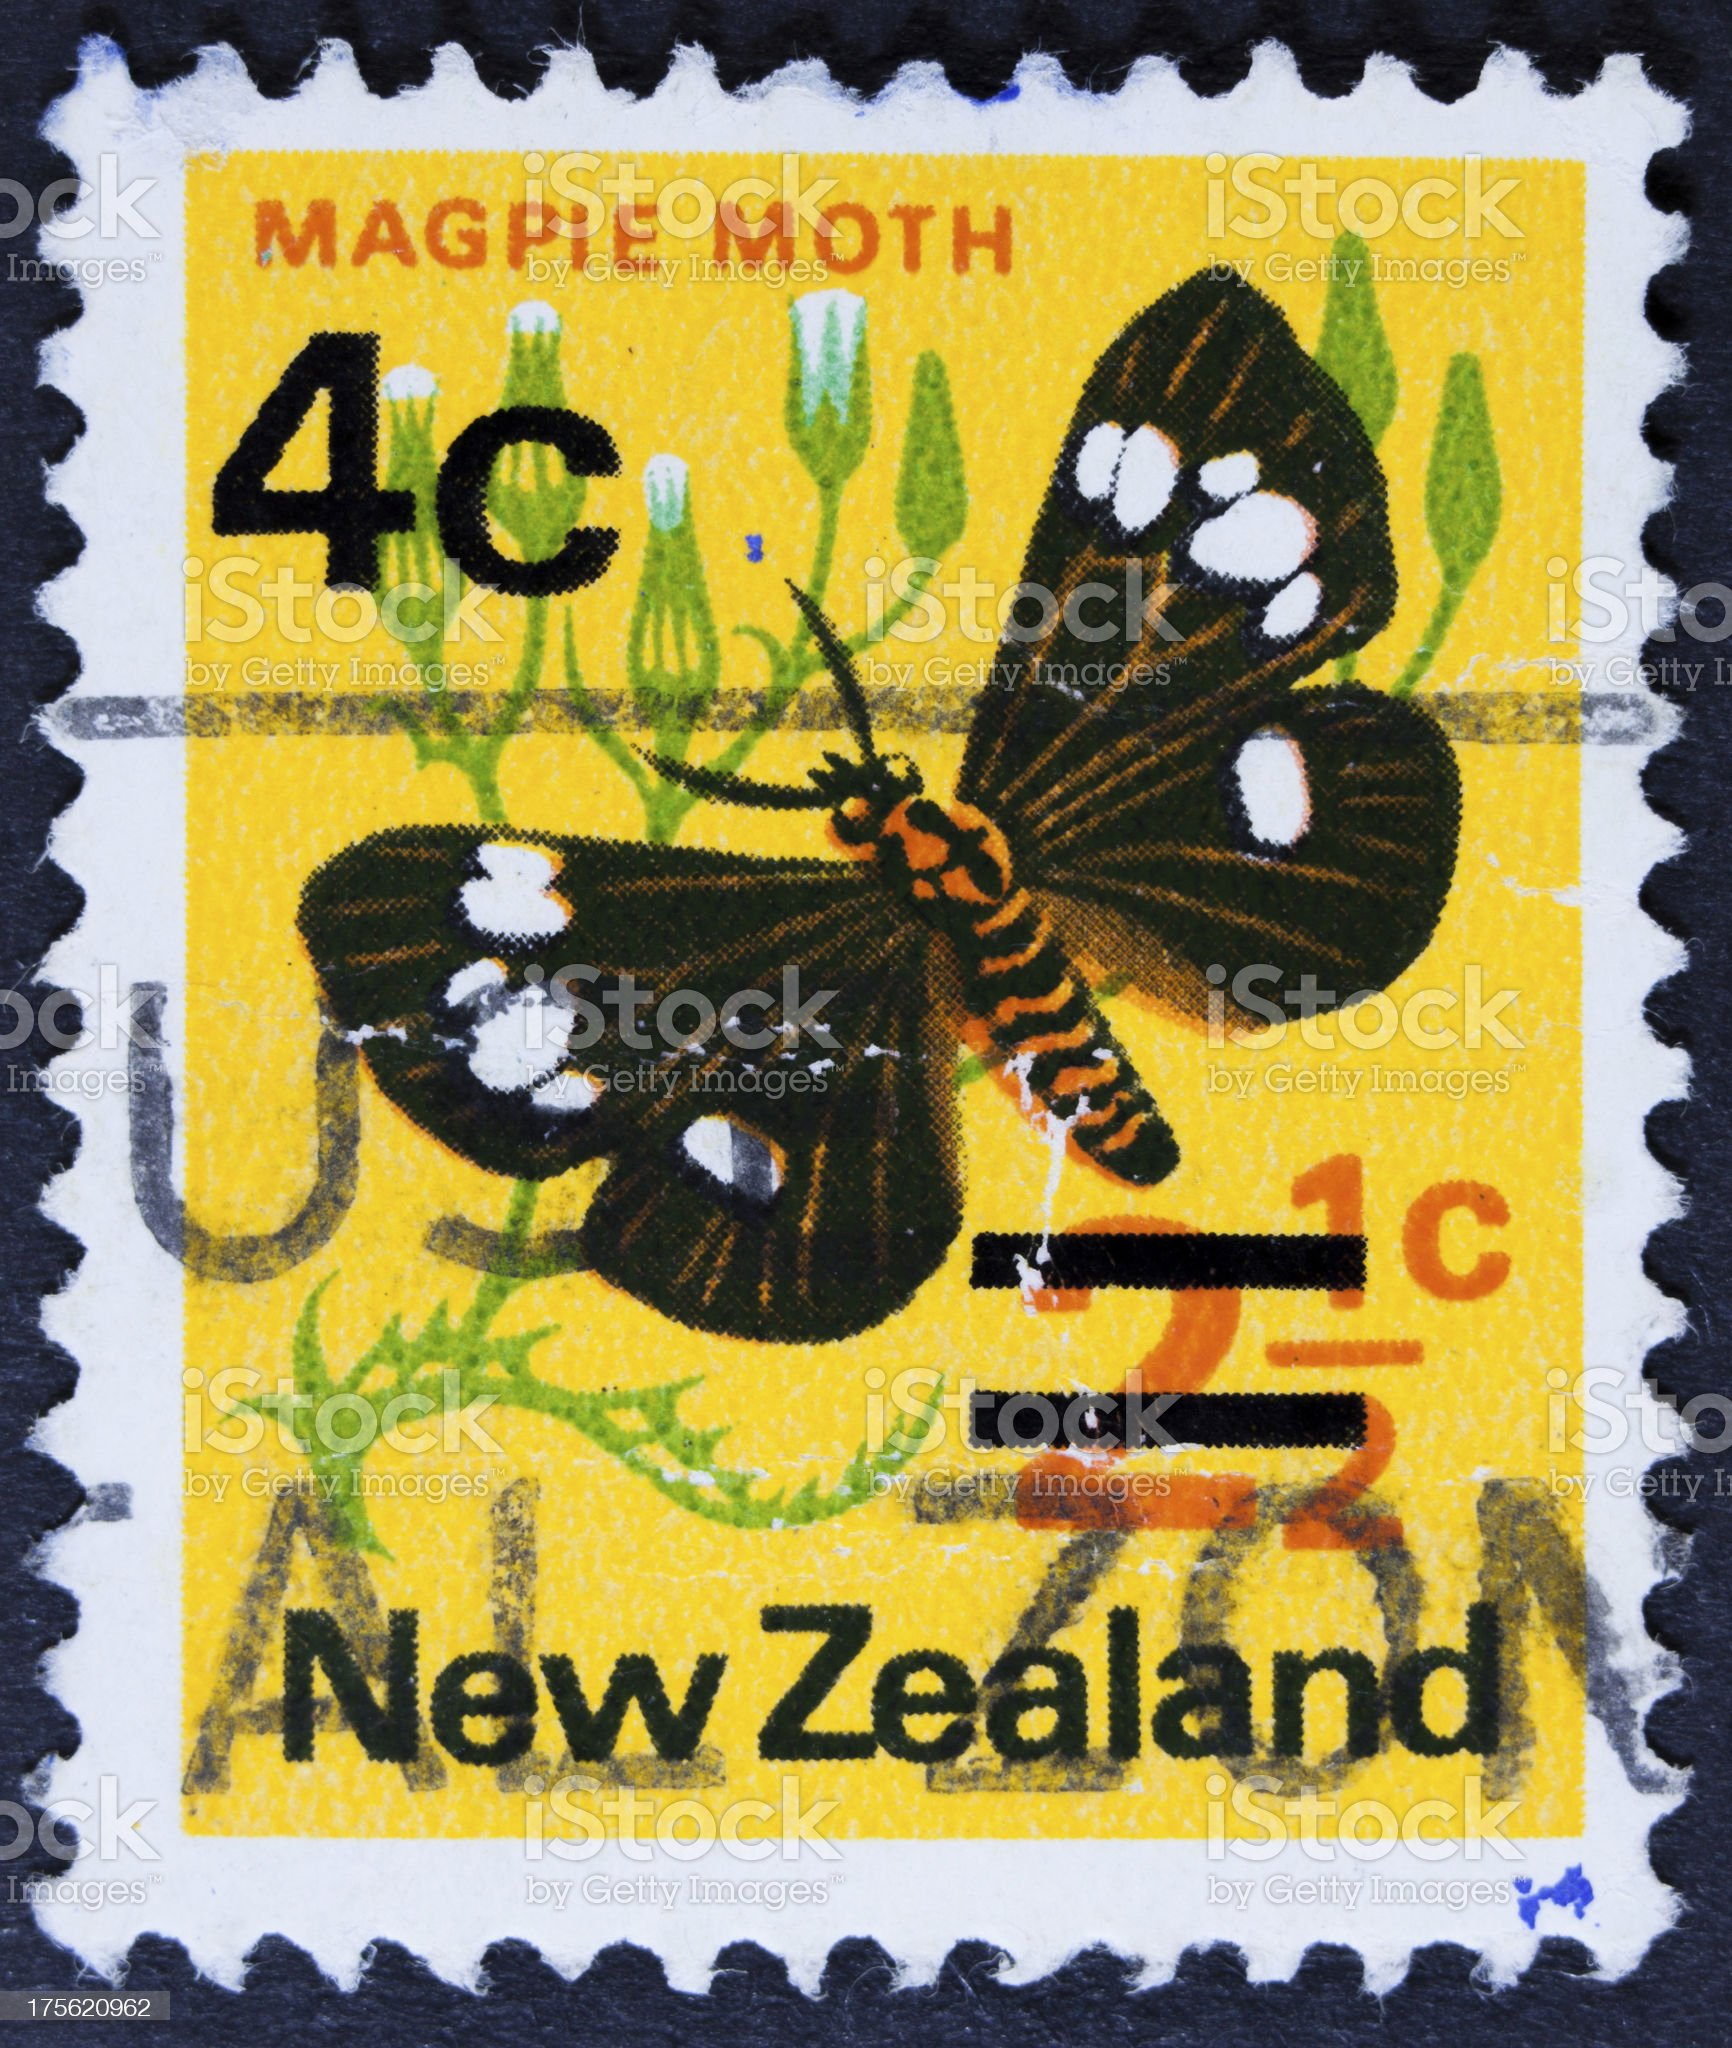 Nature Postage stamp royalty-free stock photo